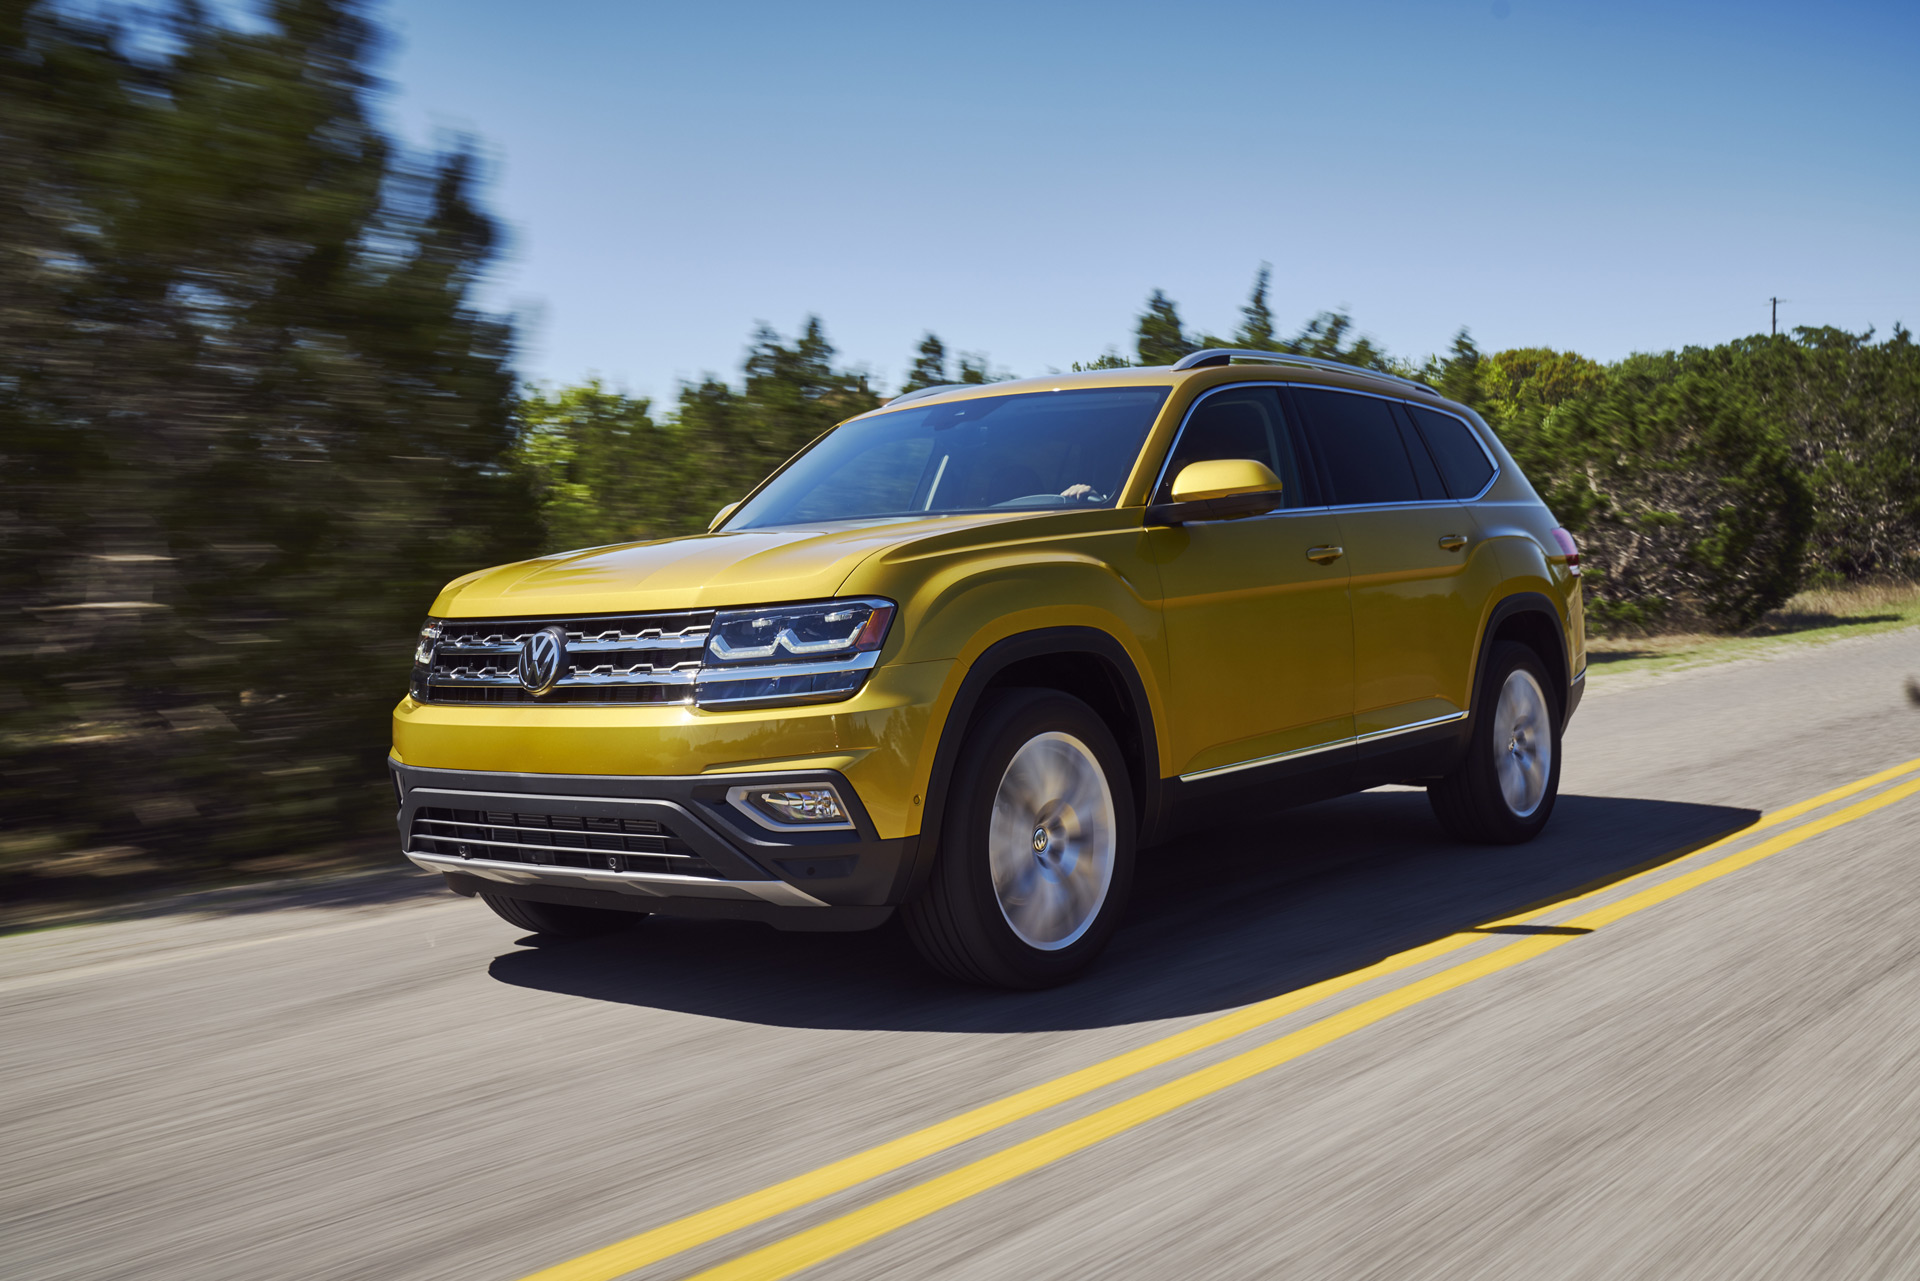 2018 volkswagen atlas pricing starts near 30k. Black Bedroom Furniture Sets. Home Design Ideas